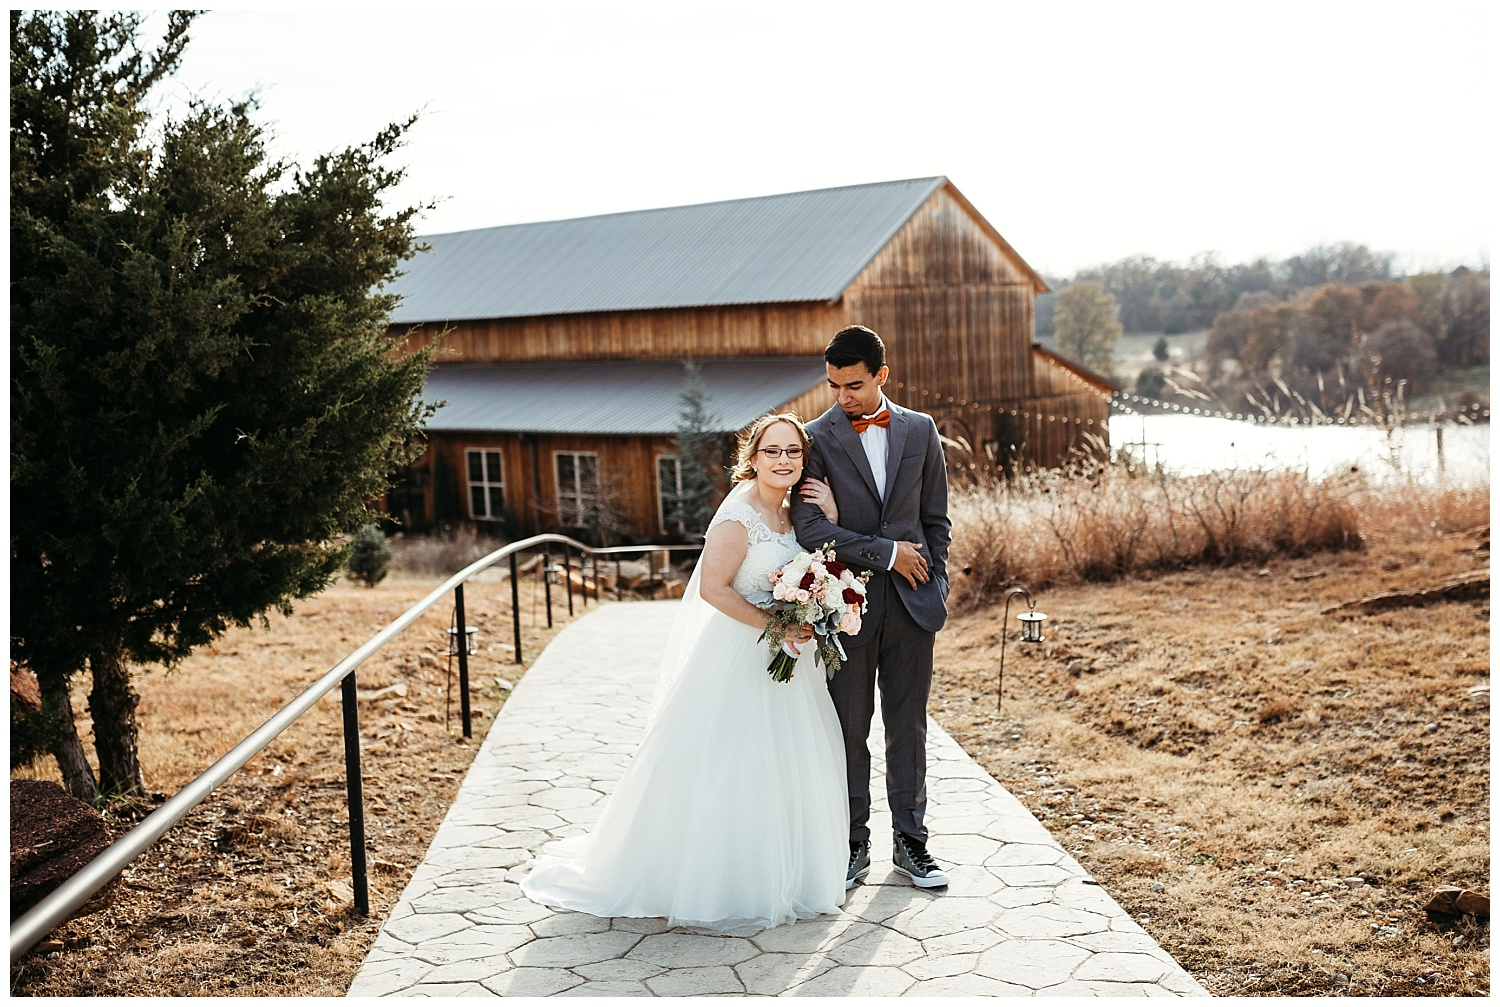 Wedding couple photos in front of the Barn at Rosemary Ridge.